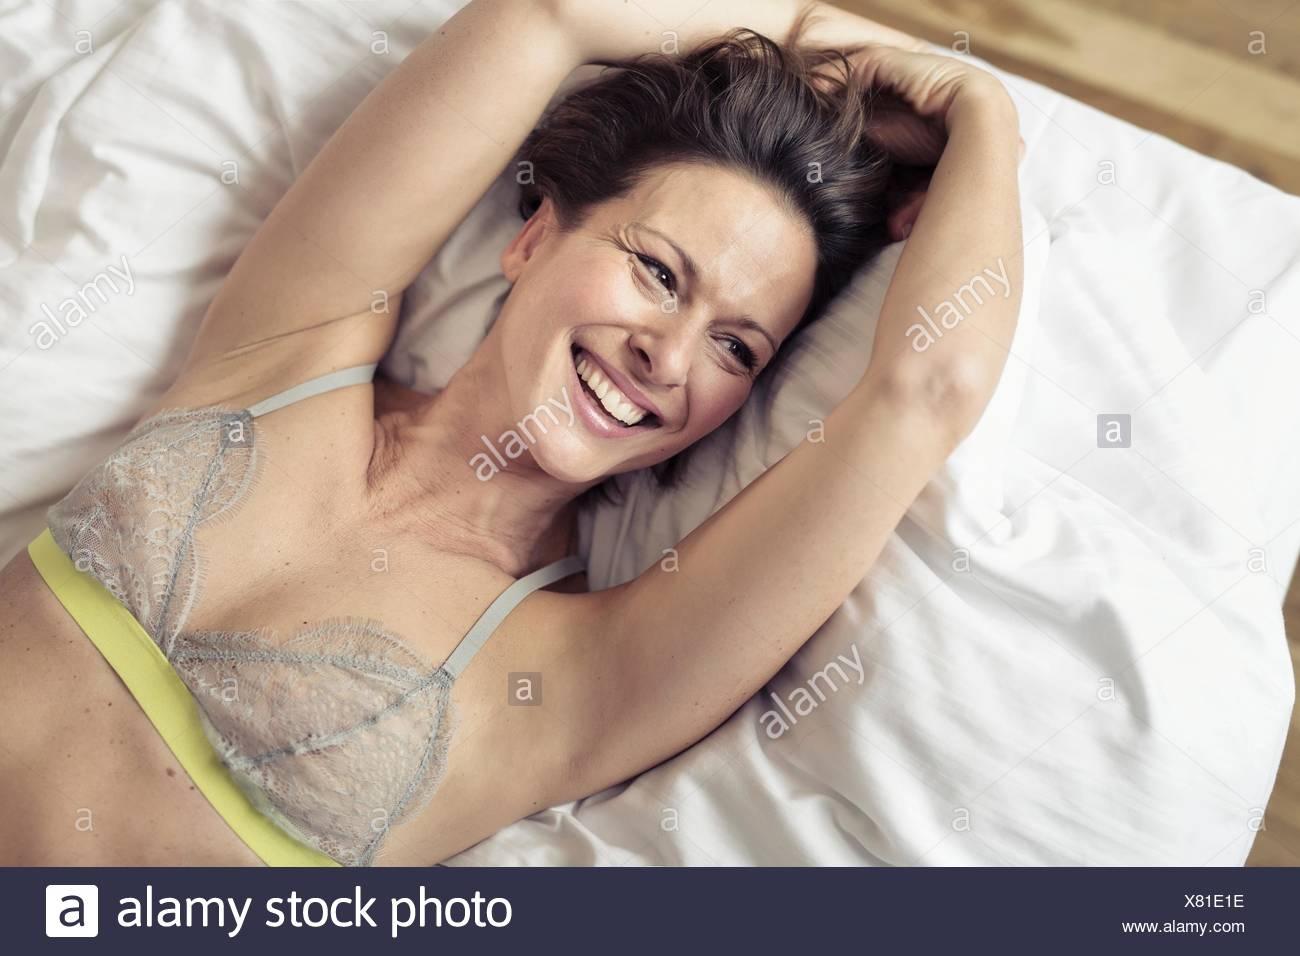 Overhead view of mature woman wearing bra lying on bed - Stock Image